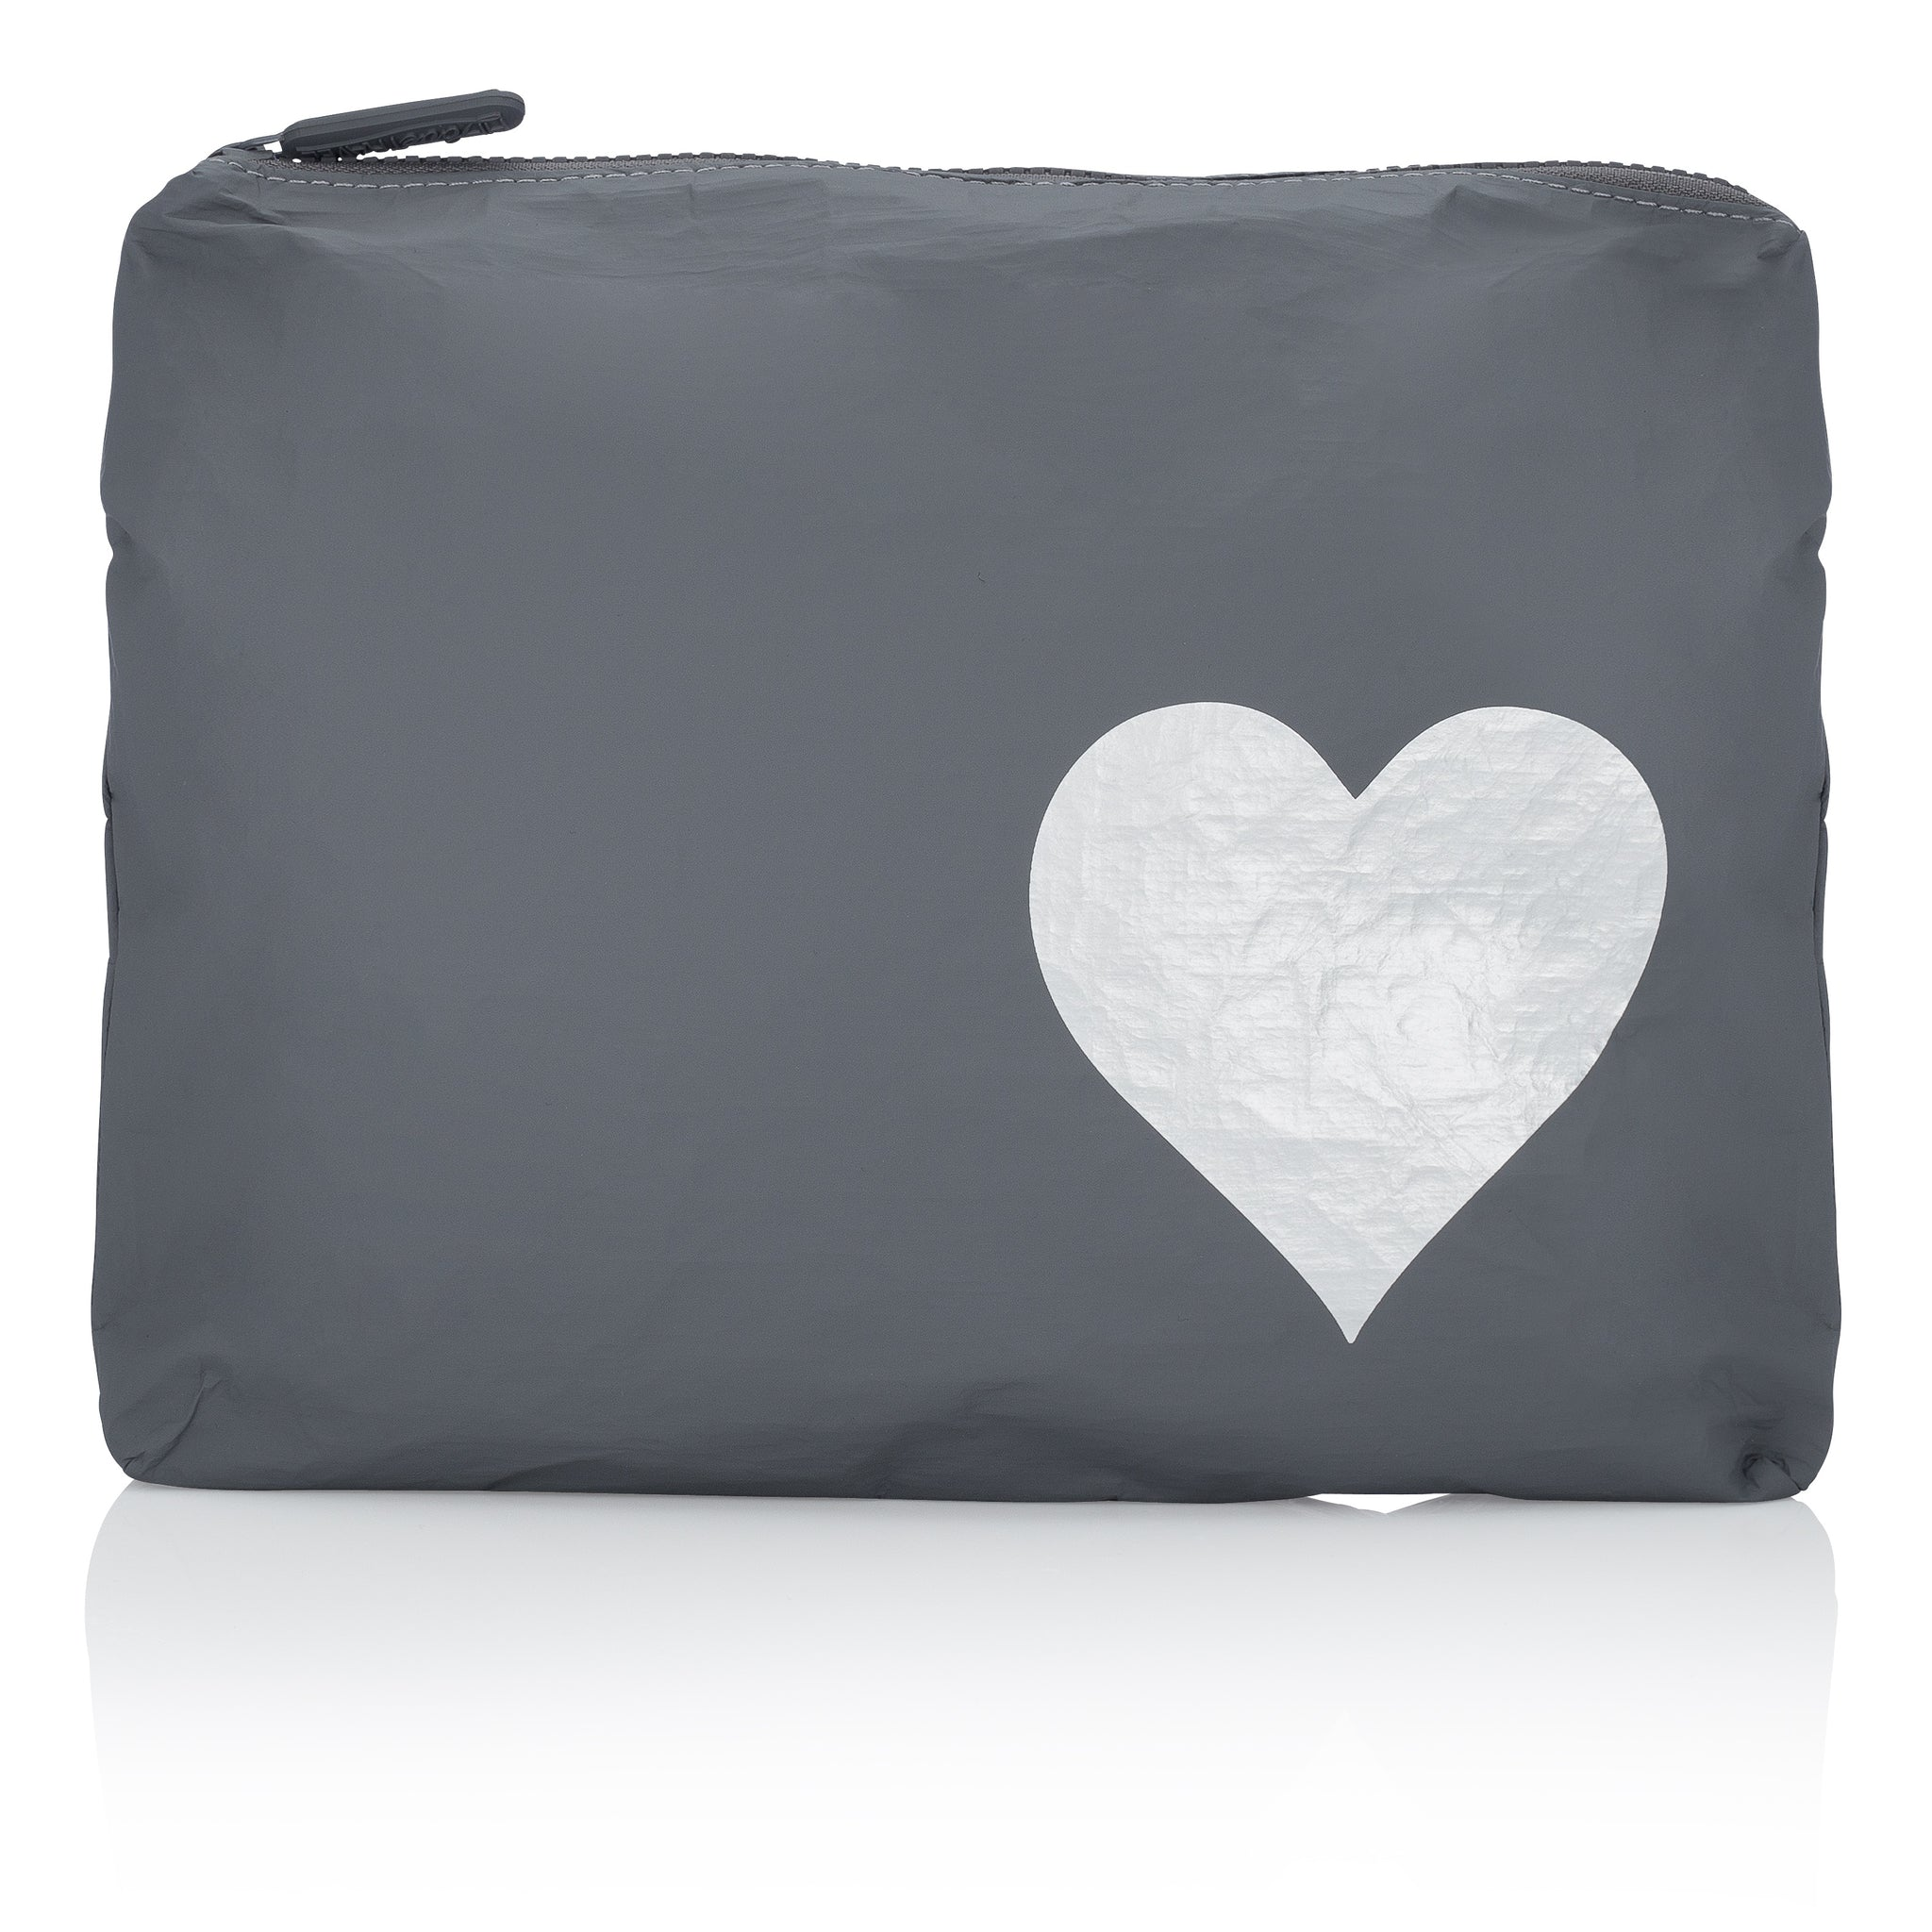 Makeup Pouch - Travel Pack - Medium Pack - Cool Gray with Metallic Silver Heart